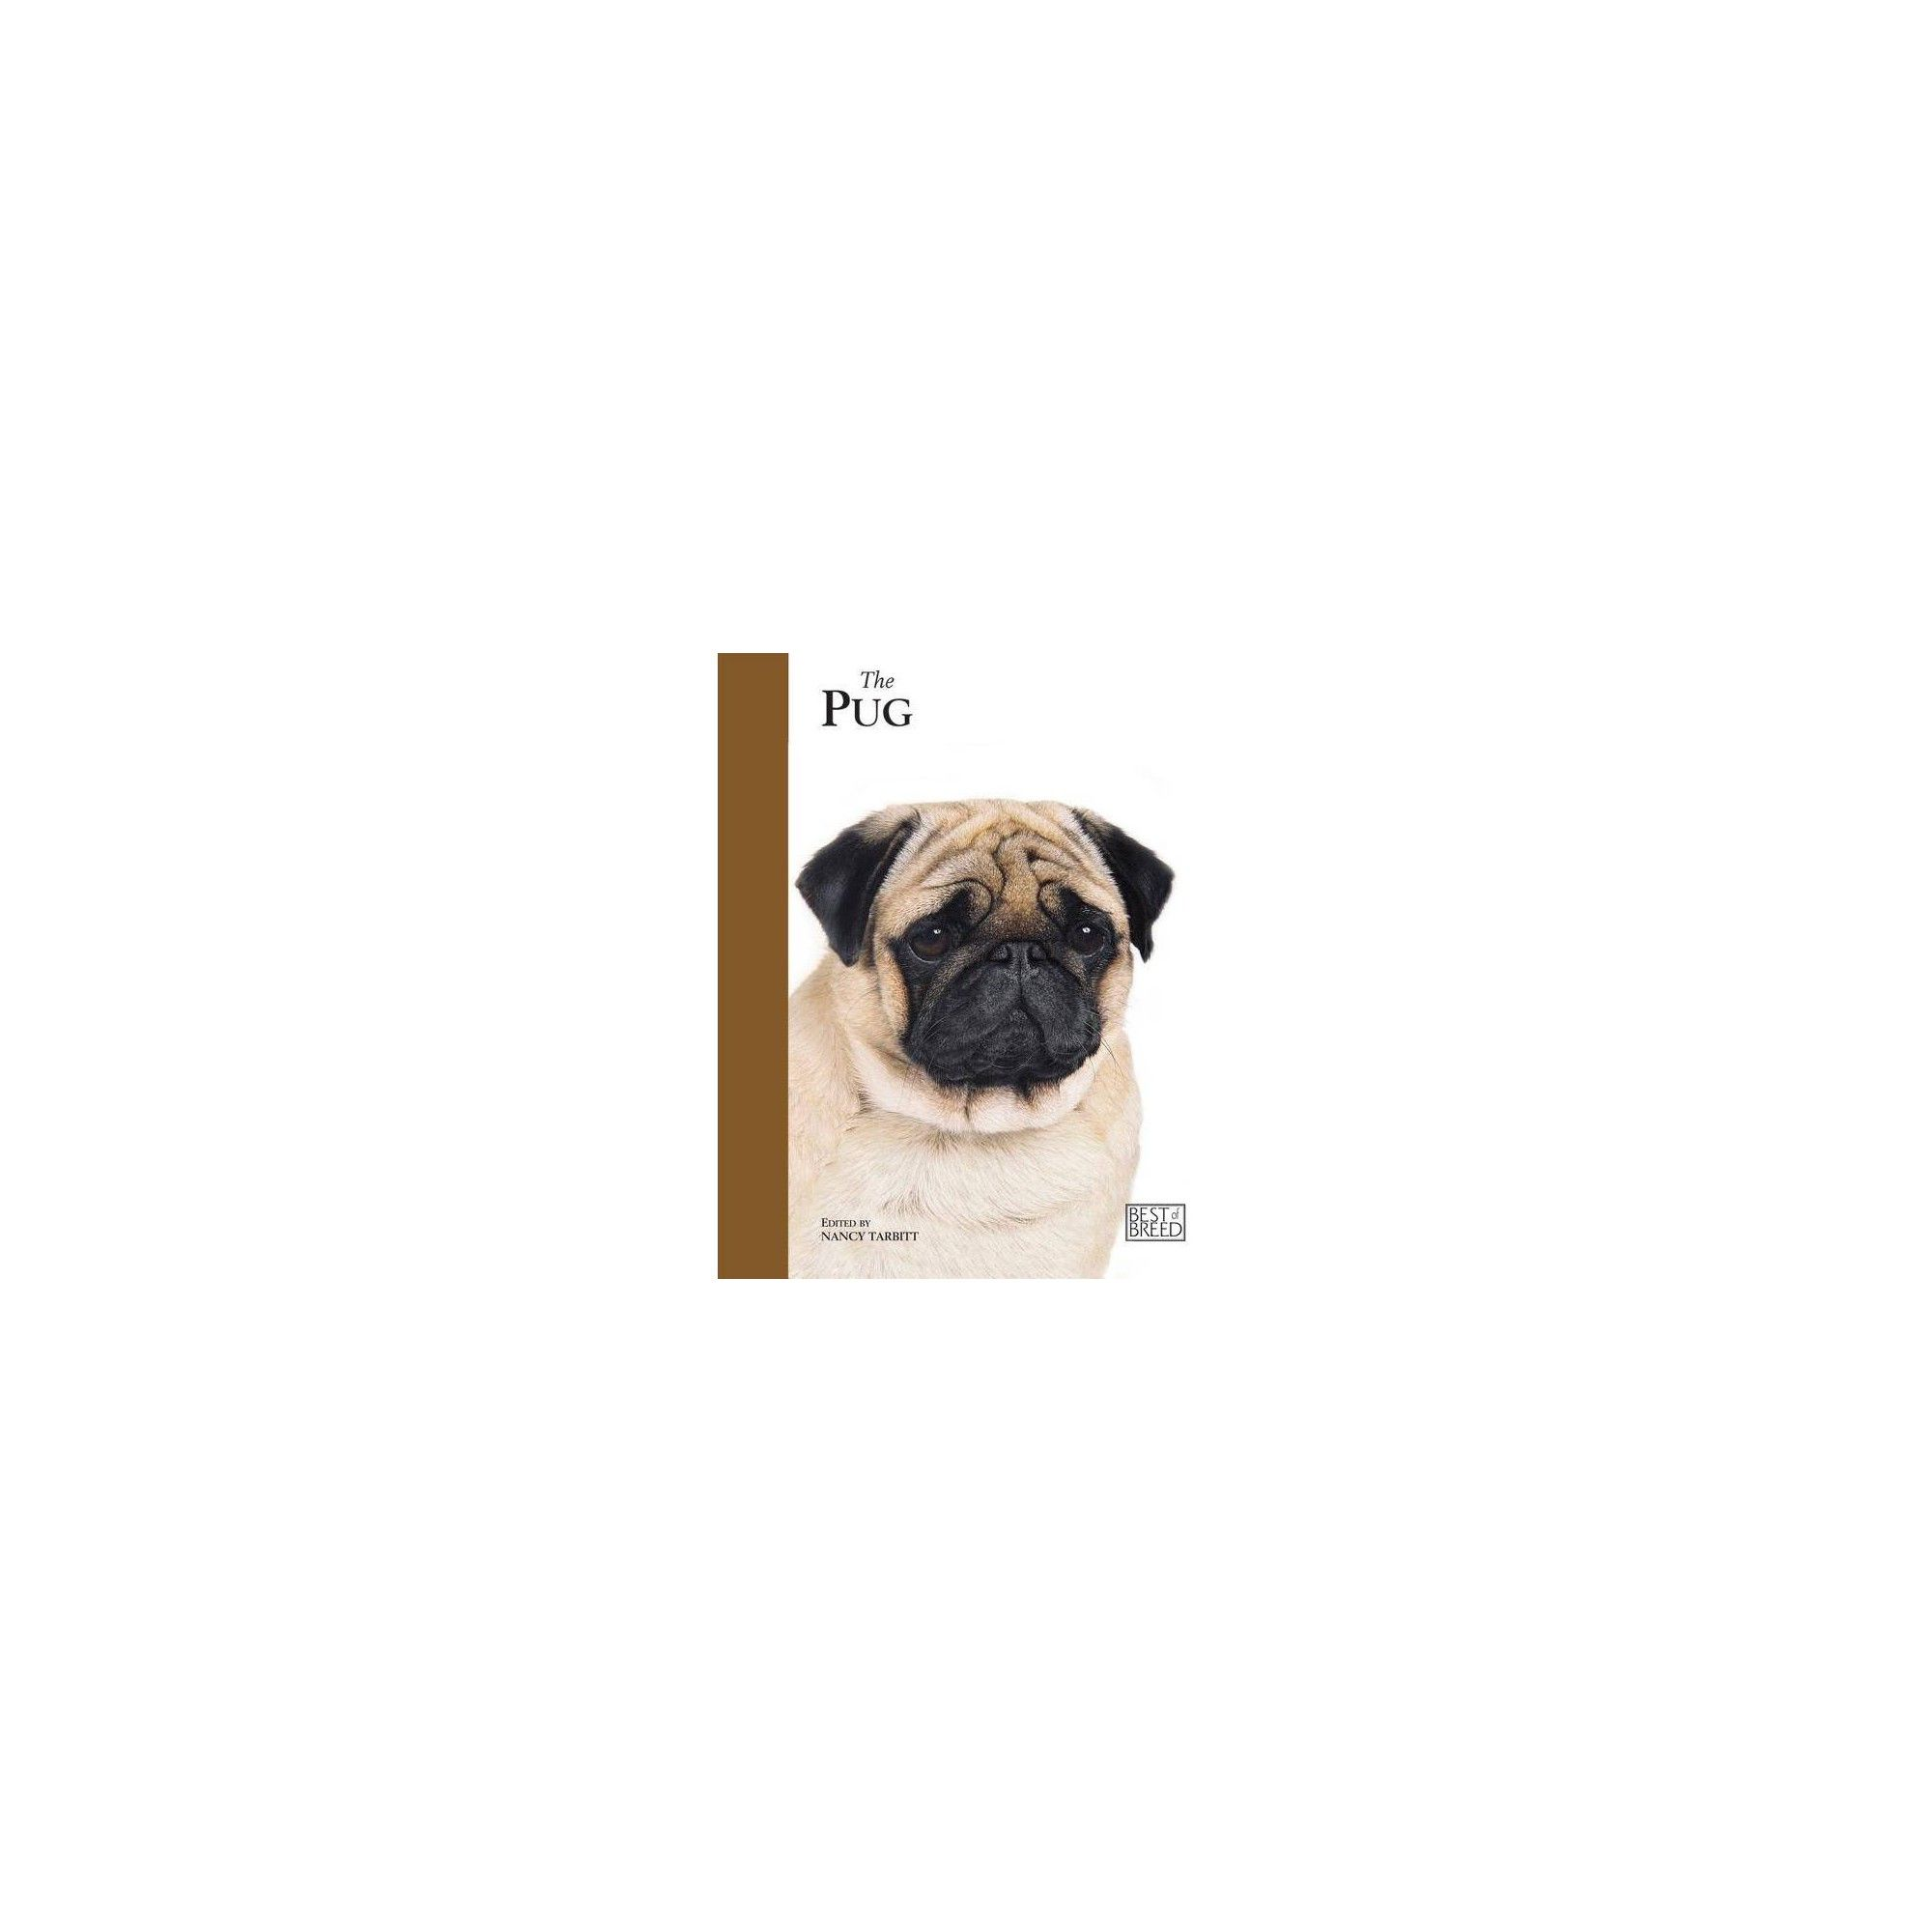 The Pug Best Of Breed Hardcover Pugs Pet Life Dogs